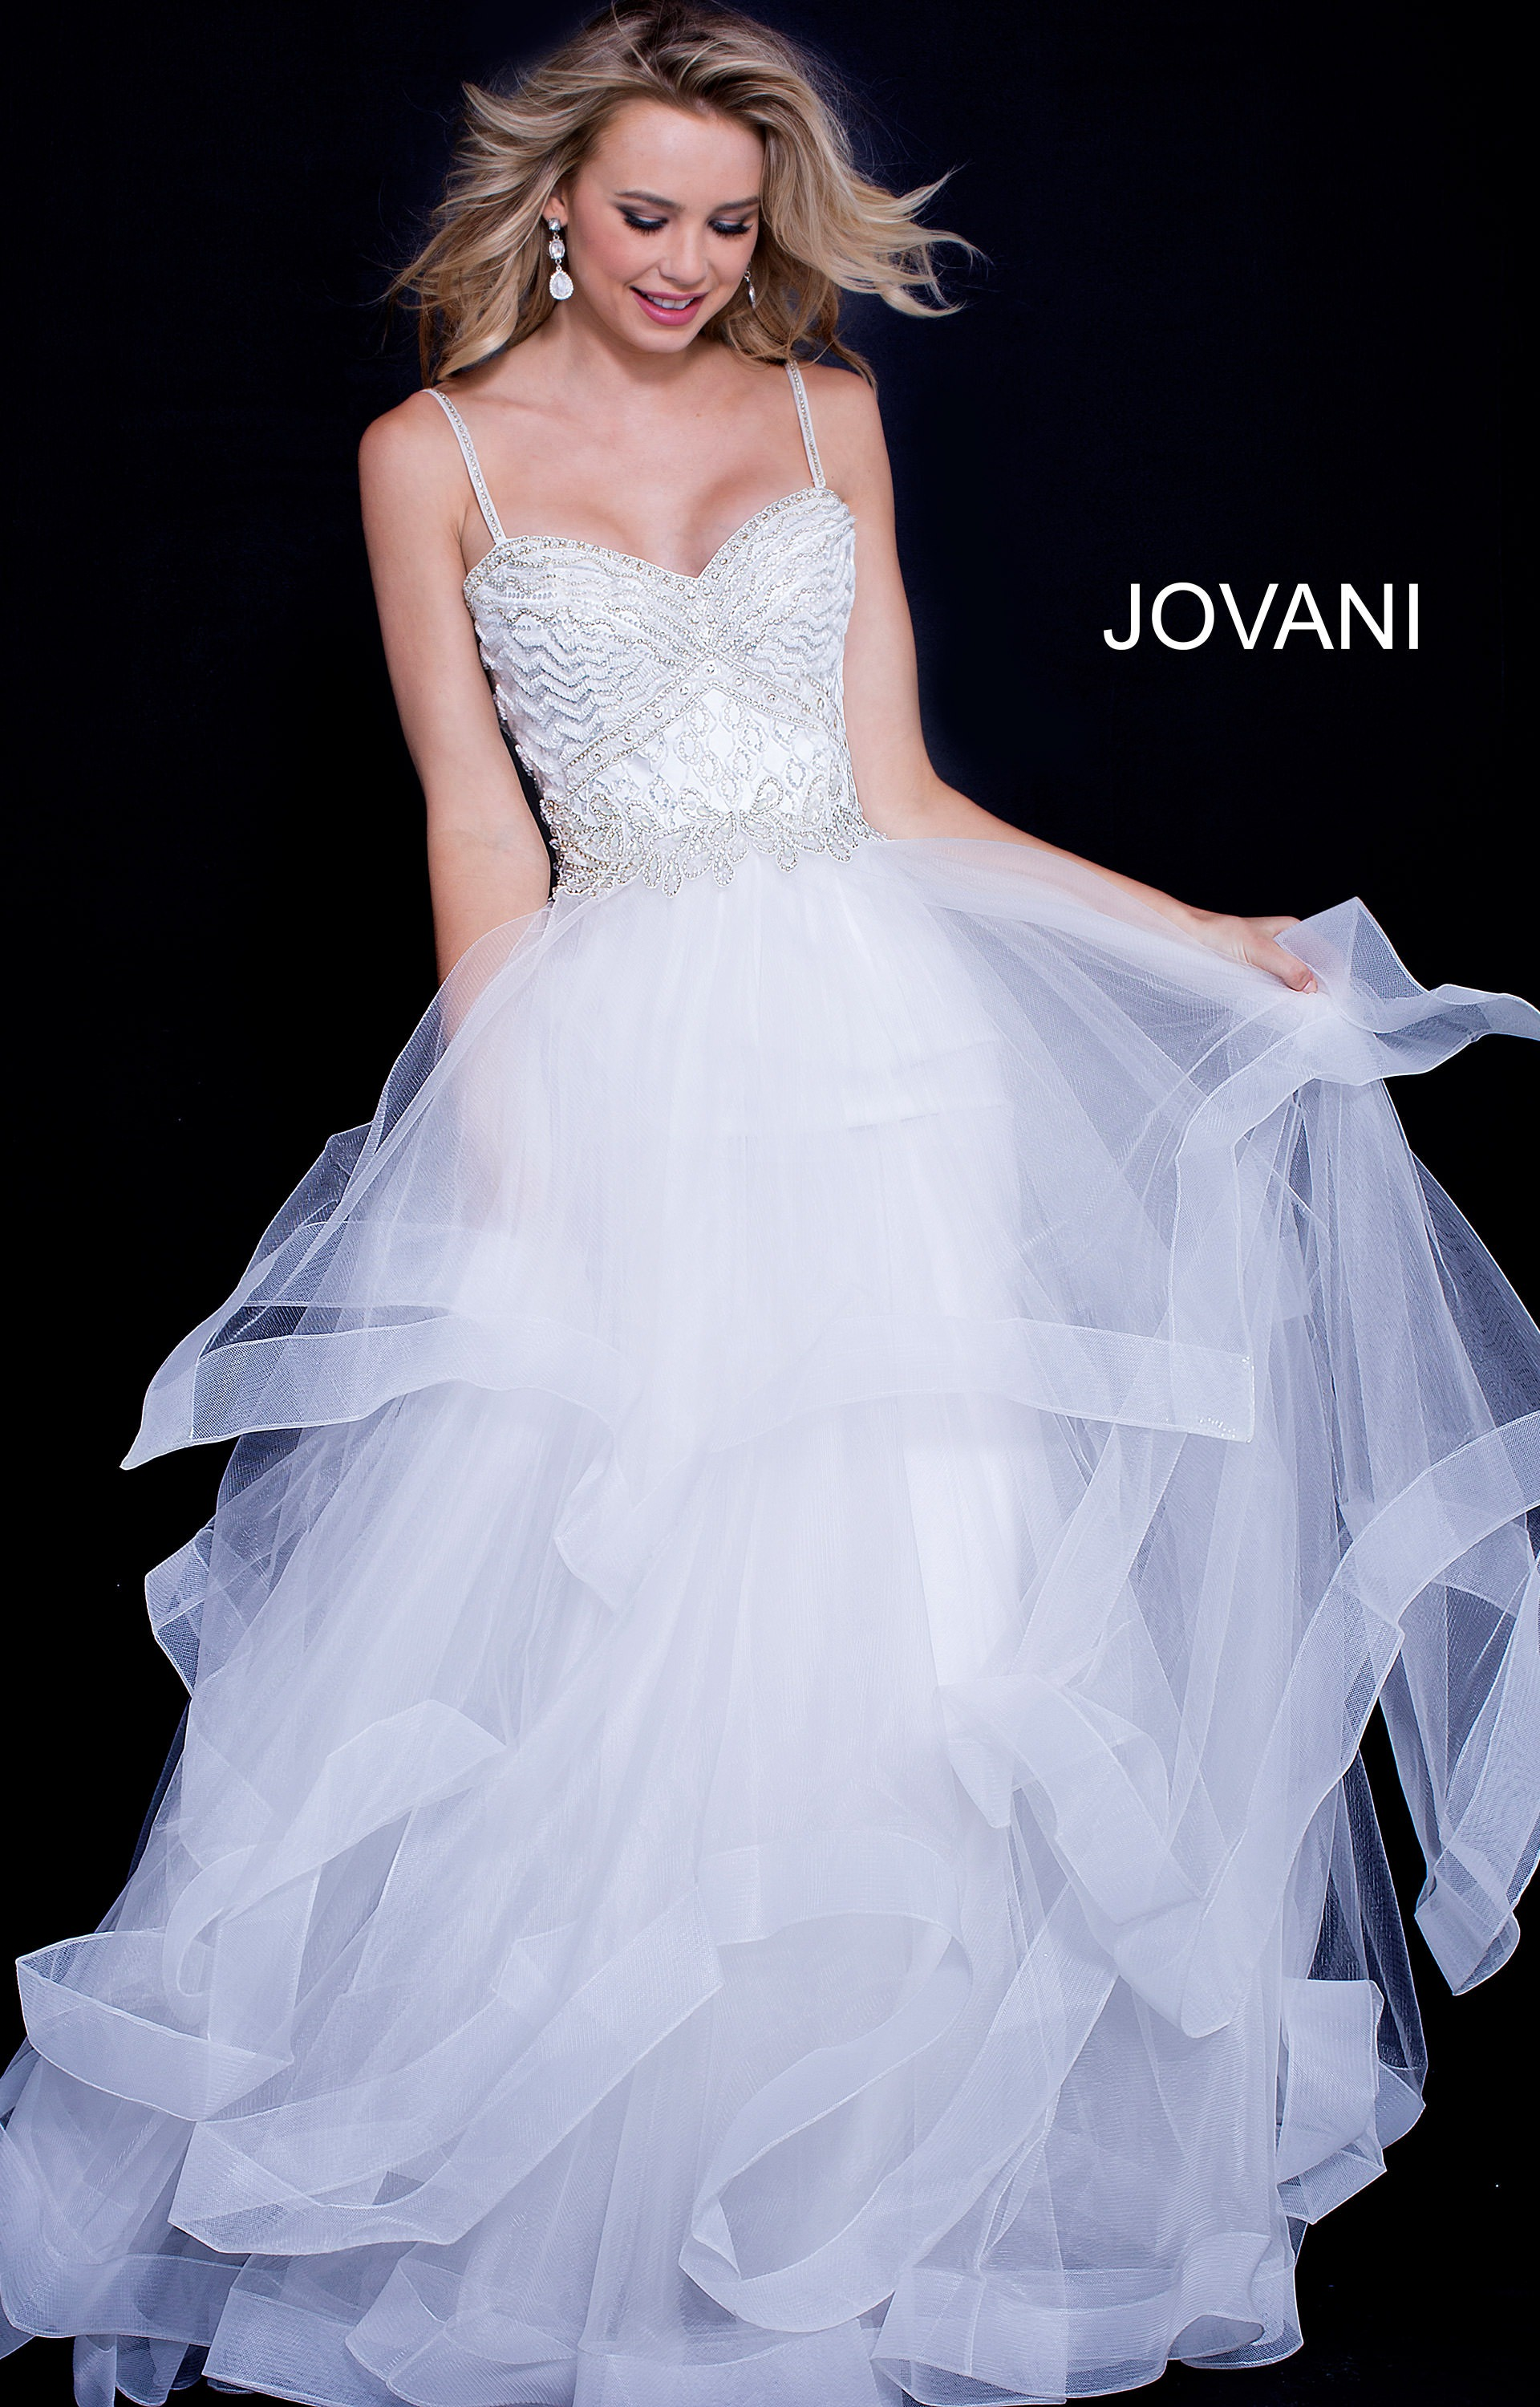 Jovani 50116 - Flirty Long Ball Gown Prom Dress